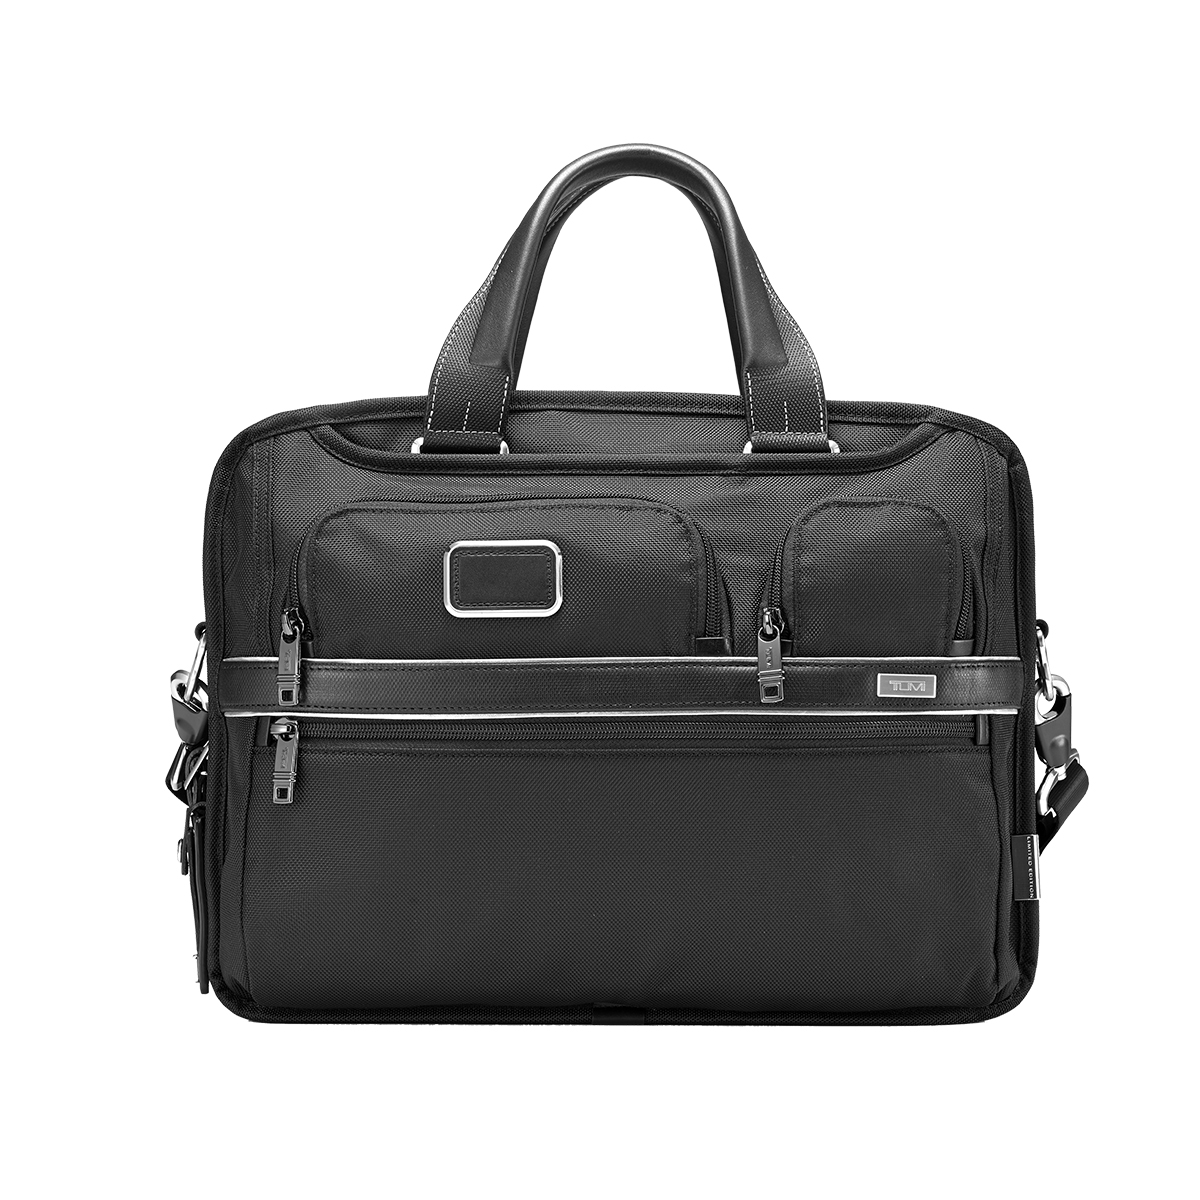 LIMITED EDITION 2015 Expandable Organizer Brief  65,000円 + 税